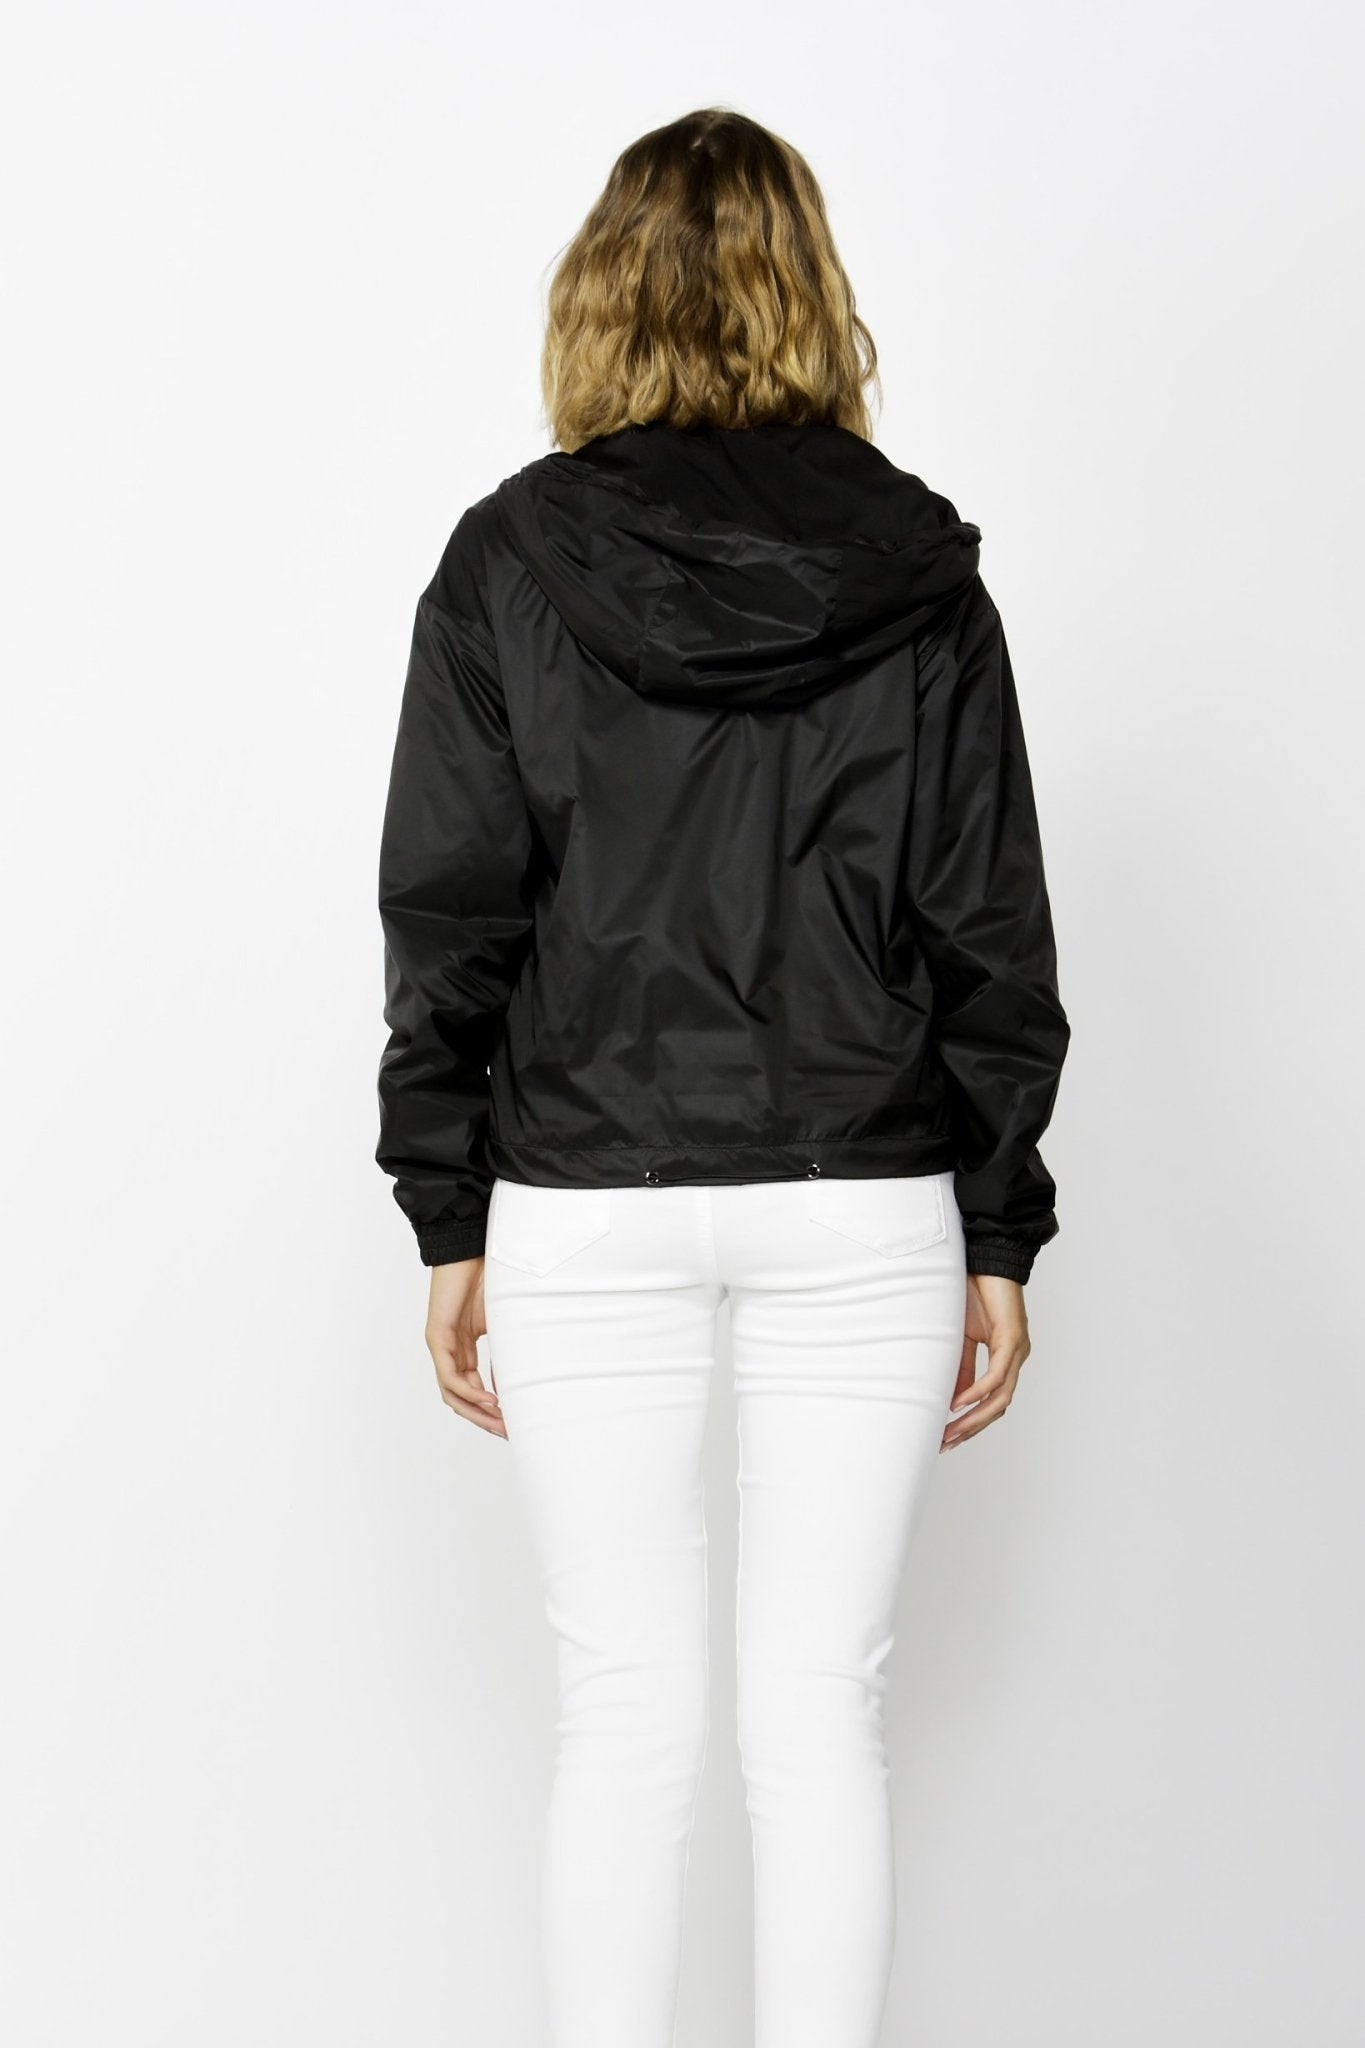 Betty Basics Knox Spray Jacket in Black - Hey Sara